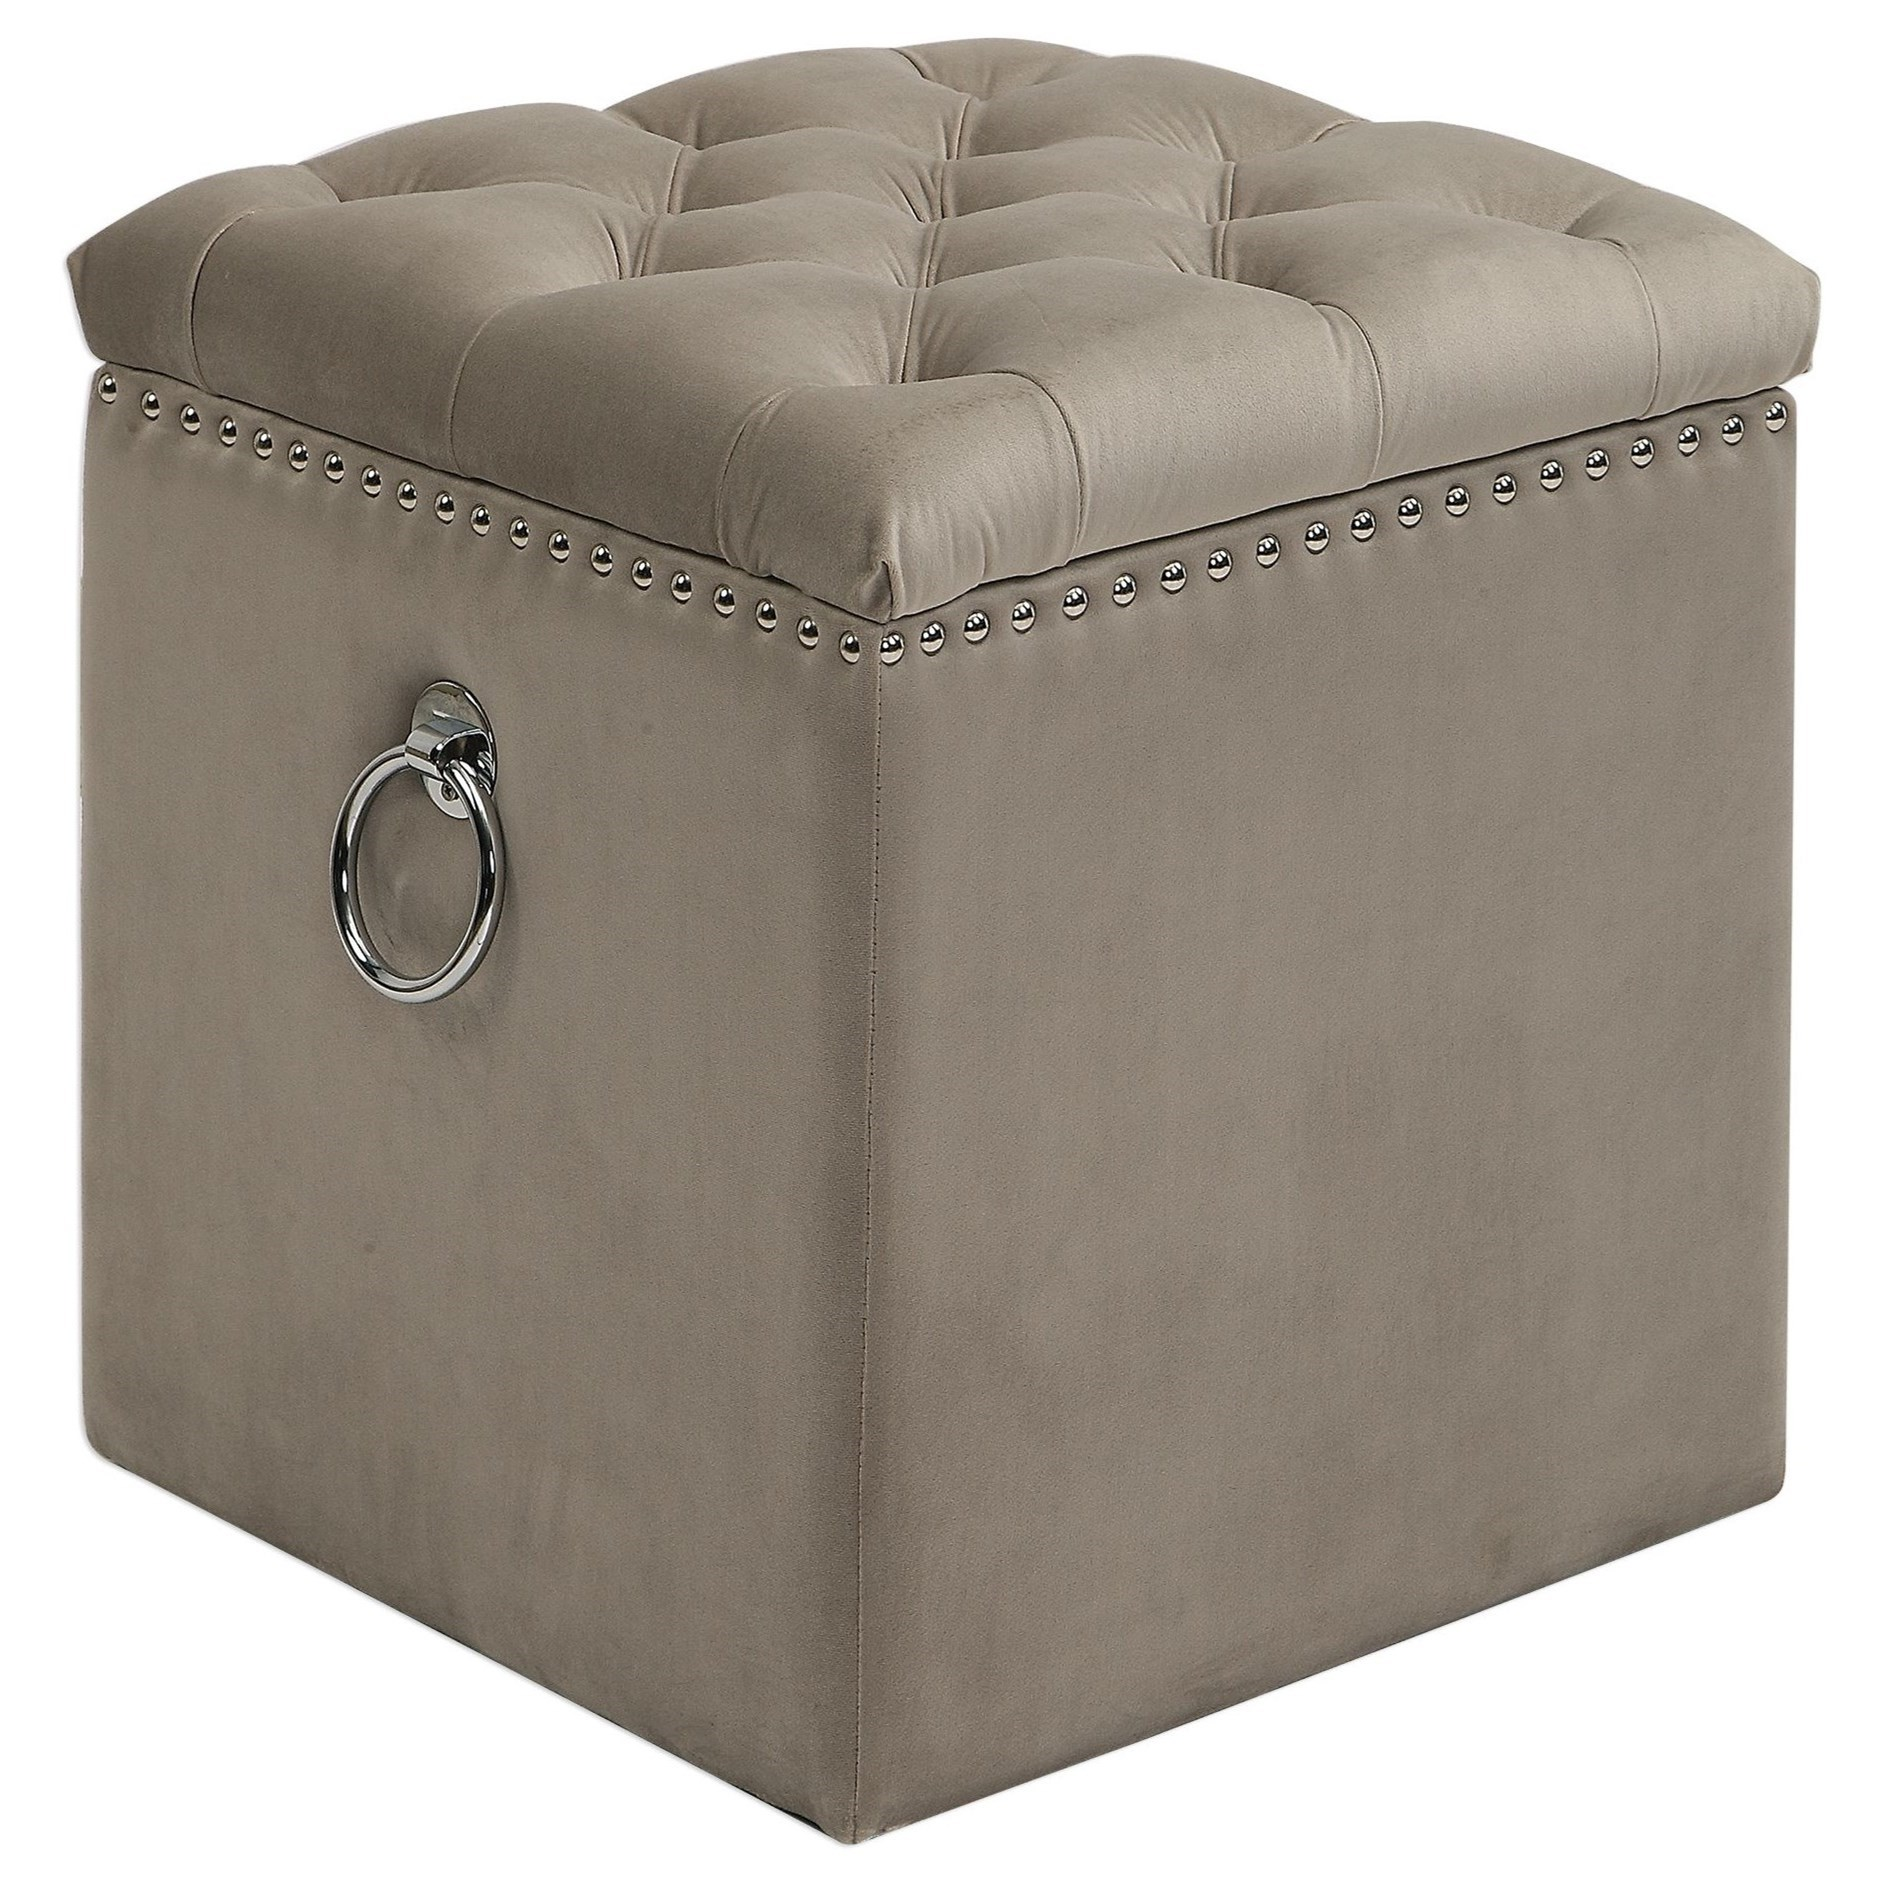 Accent Furniture - Ottomans Talullah Tufted Storage Ottoman by Uttermost at Del Sol Furniture